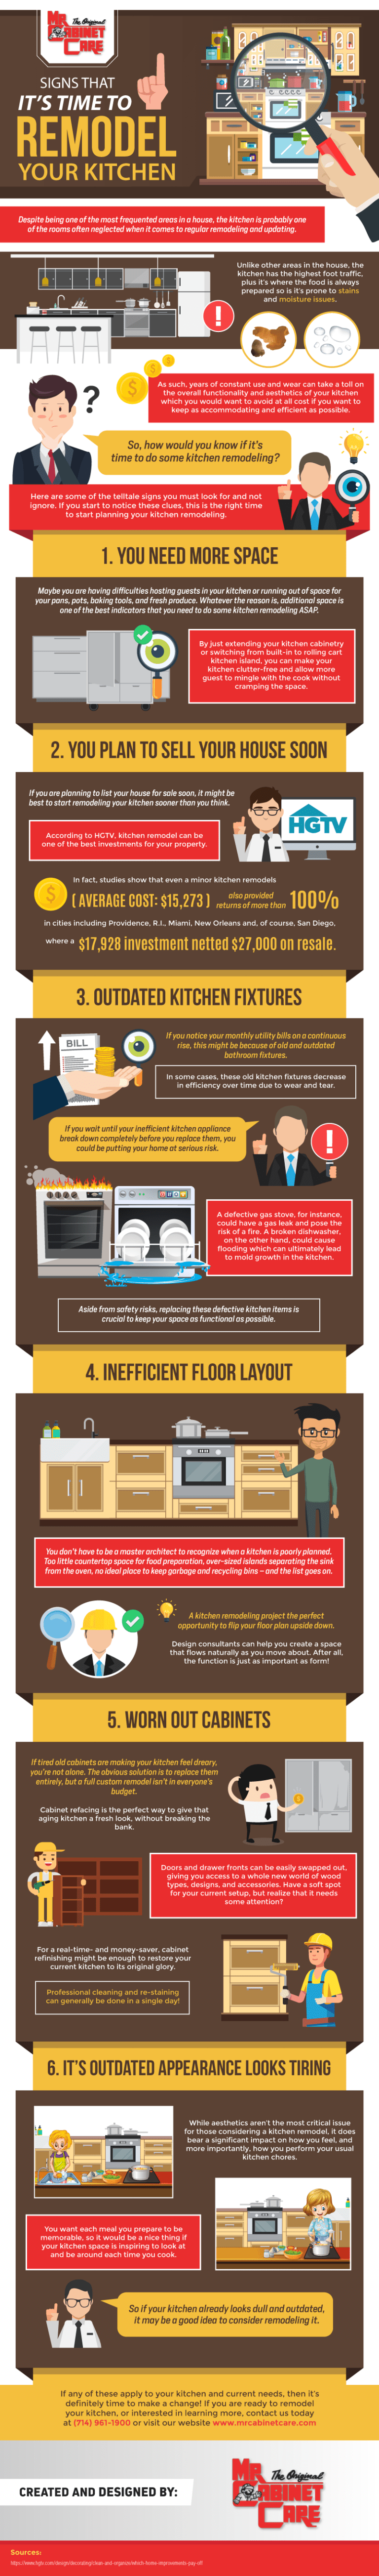 Signs-That-It's-Time-to-Remodel-Your-Kitchen